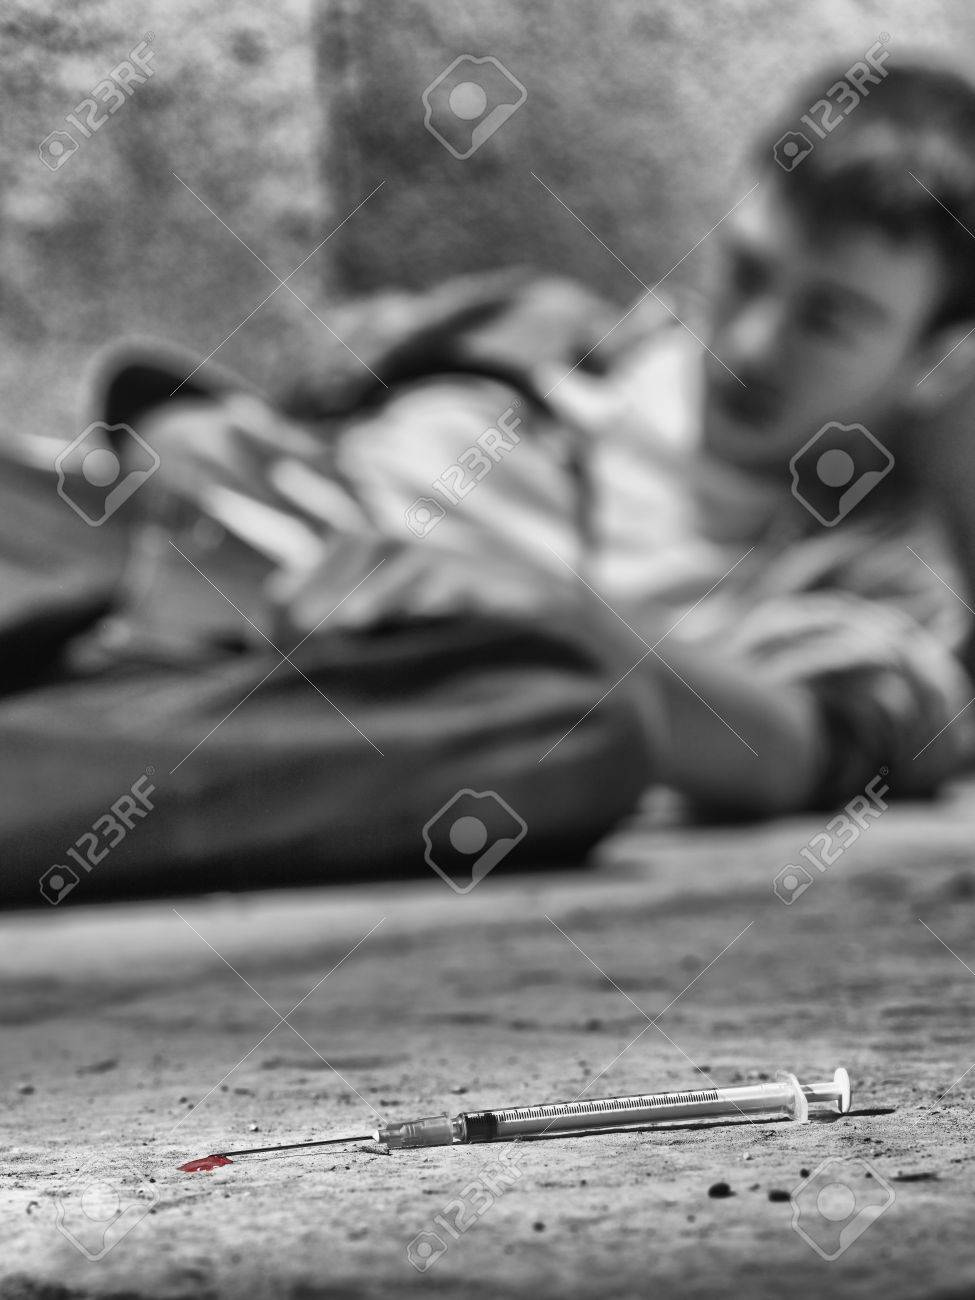 Young drug addict with a syringe in foreground - 38156369